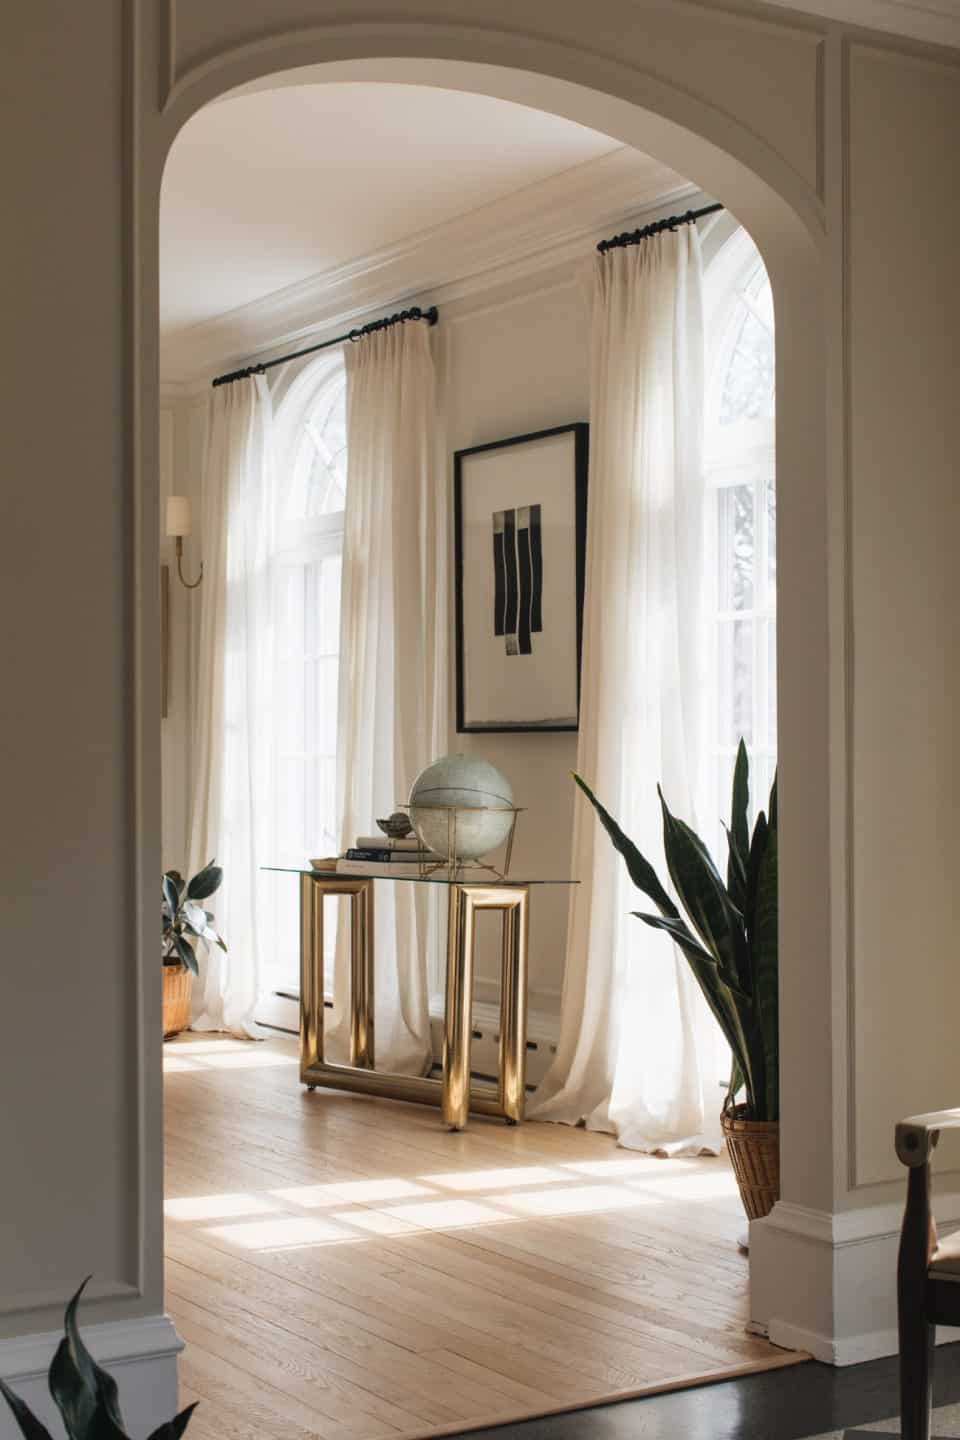 Pernille Lind's Inviting Interiors Reflect Her Global Upbringing